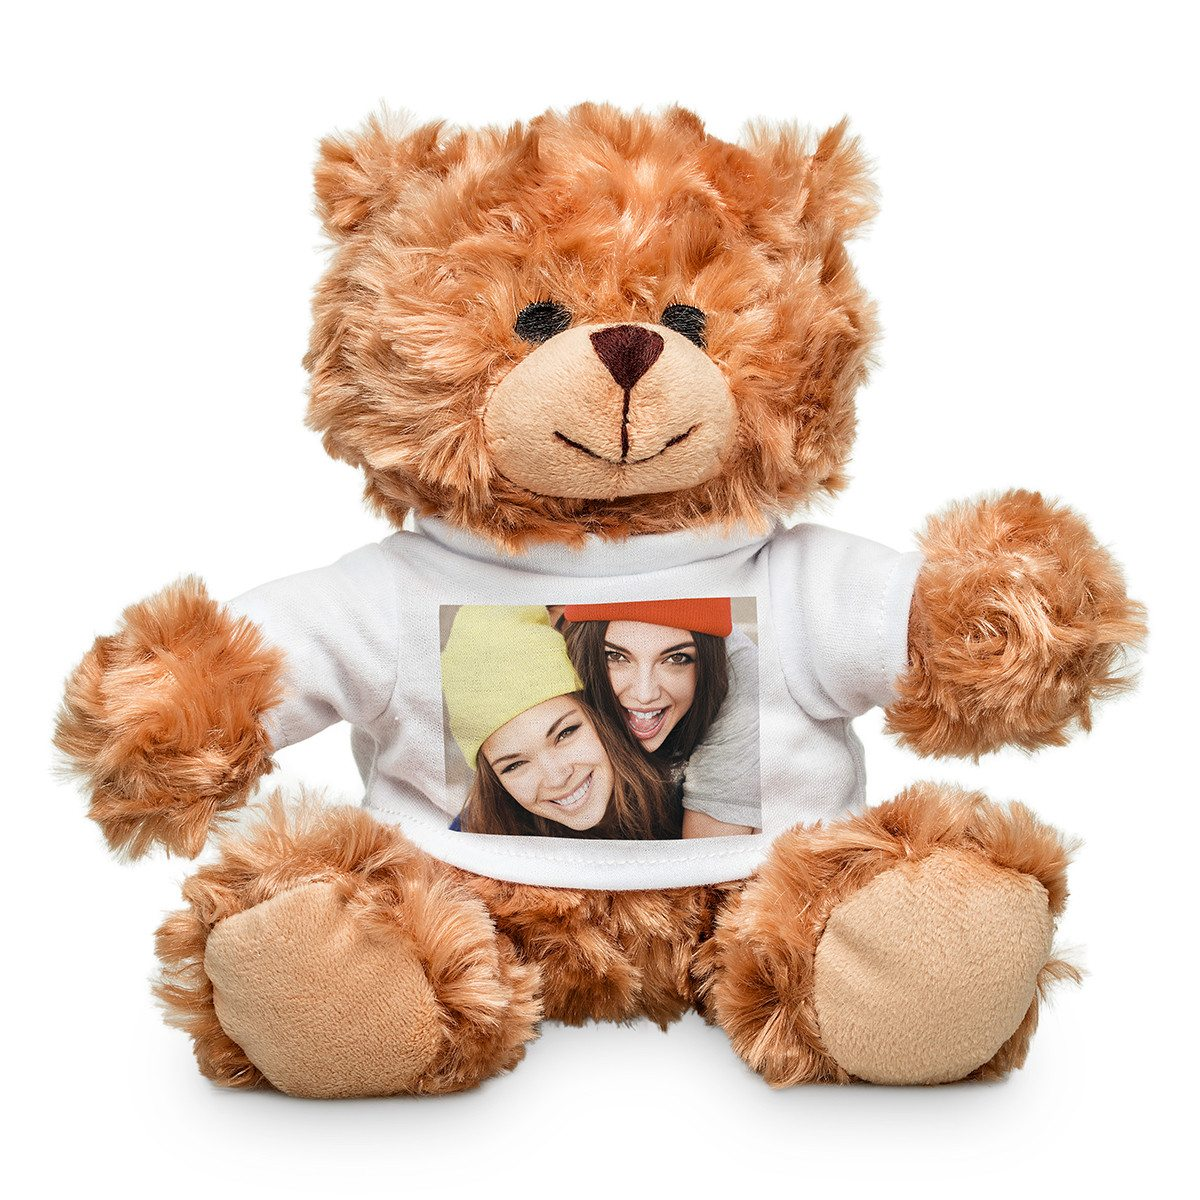 ours-en-peluche-photo-personnalisee